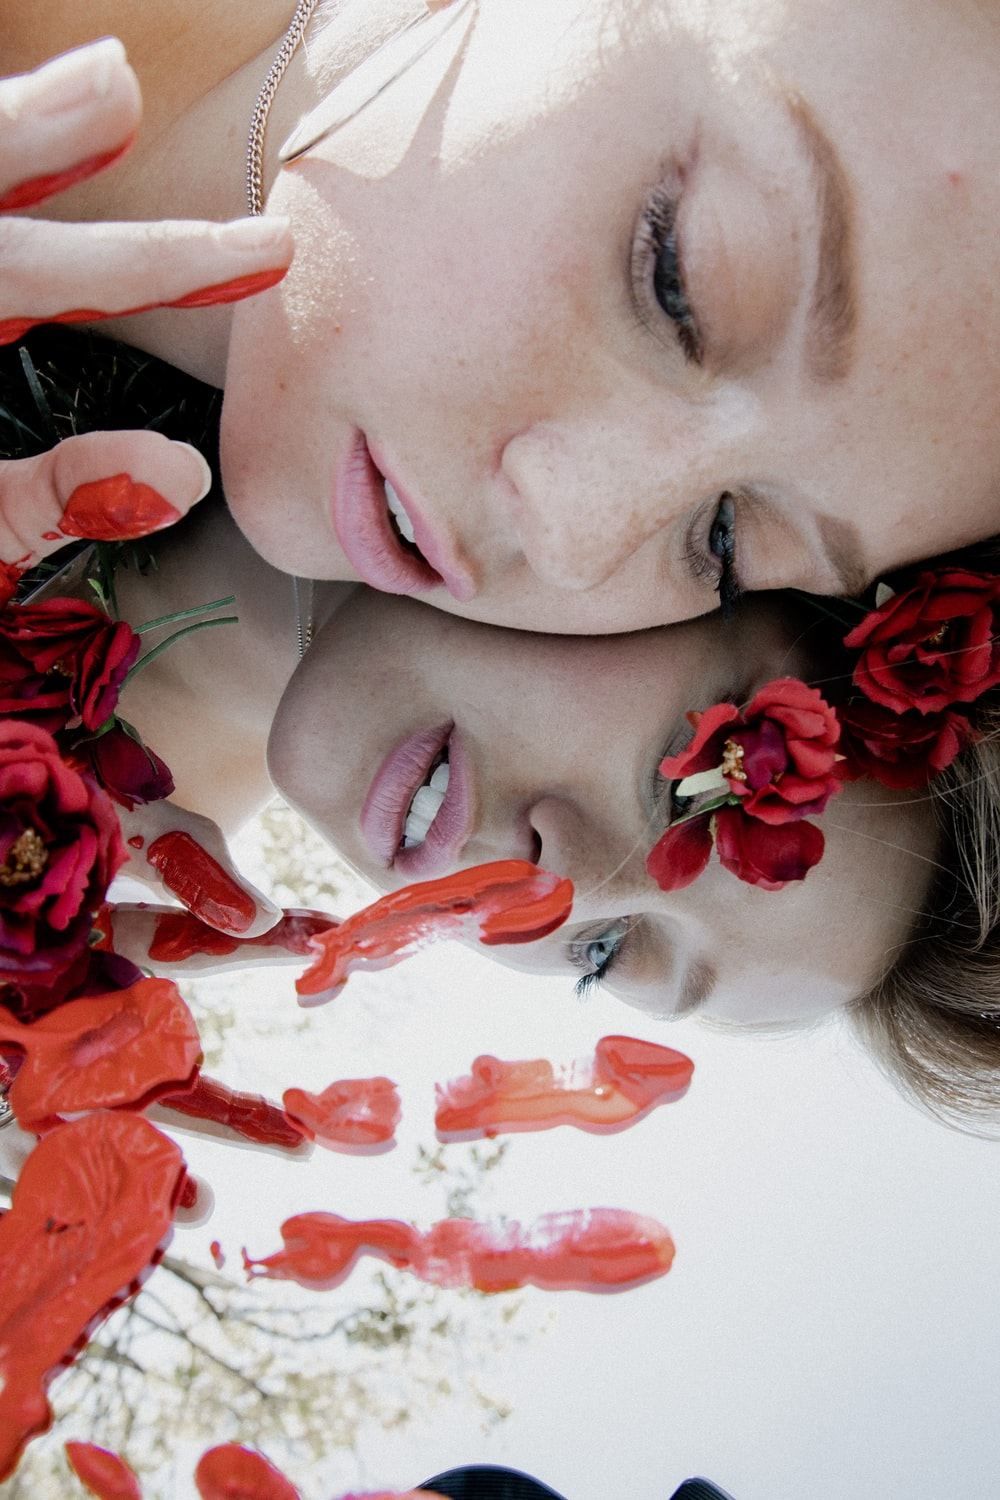 woman with red petals on her face